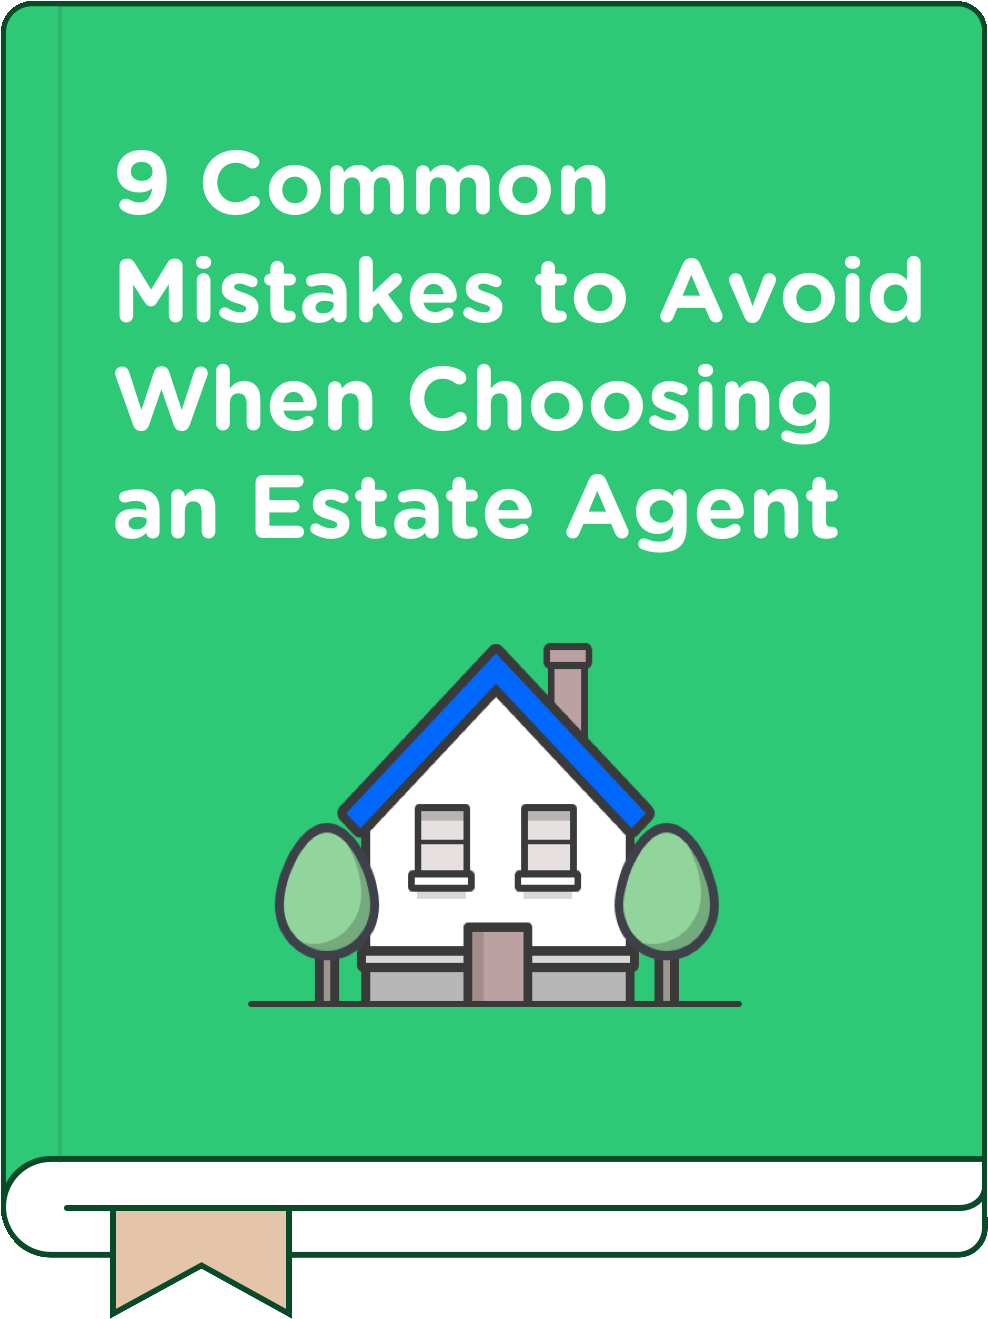 Mistakes to avoid when choosing an agent